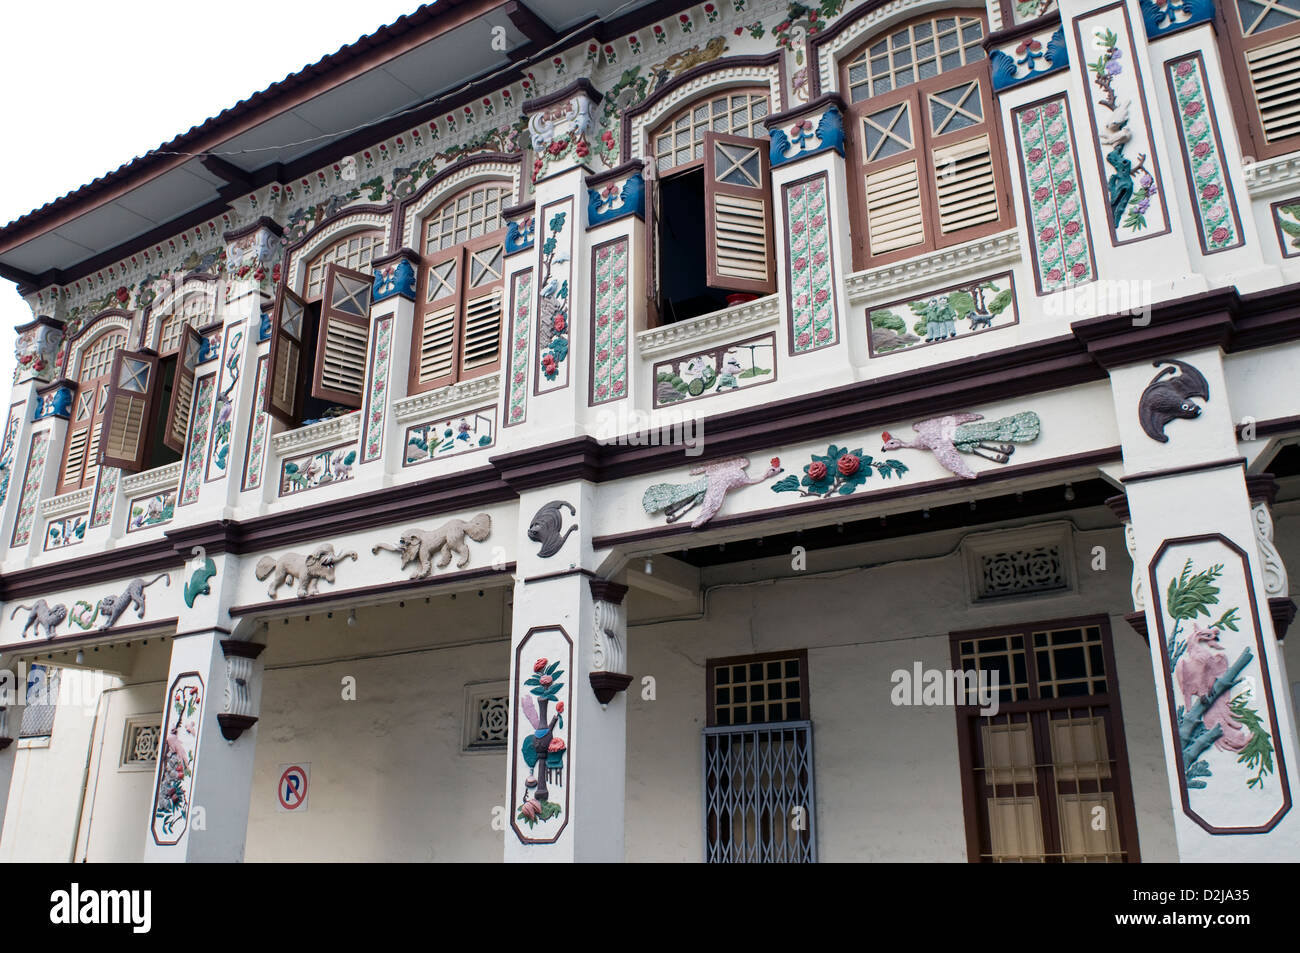 gaily painted shophouse, geylang, singapore - Stock Image